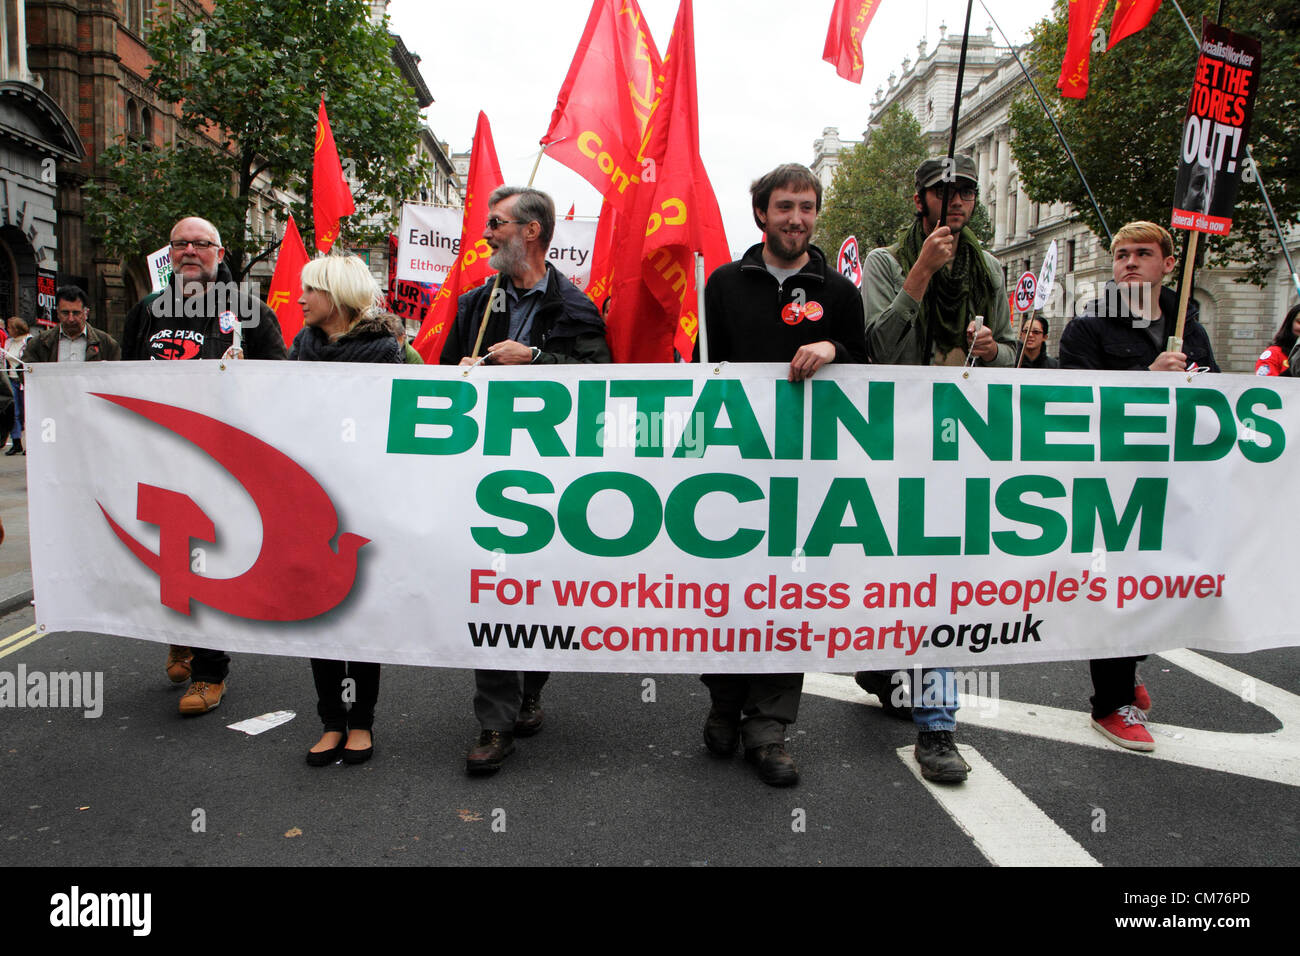 Uk Communism High Resolution Stock Photography and Images - Alamy